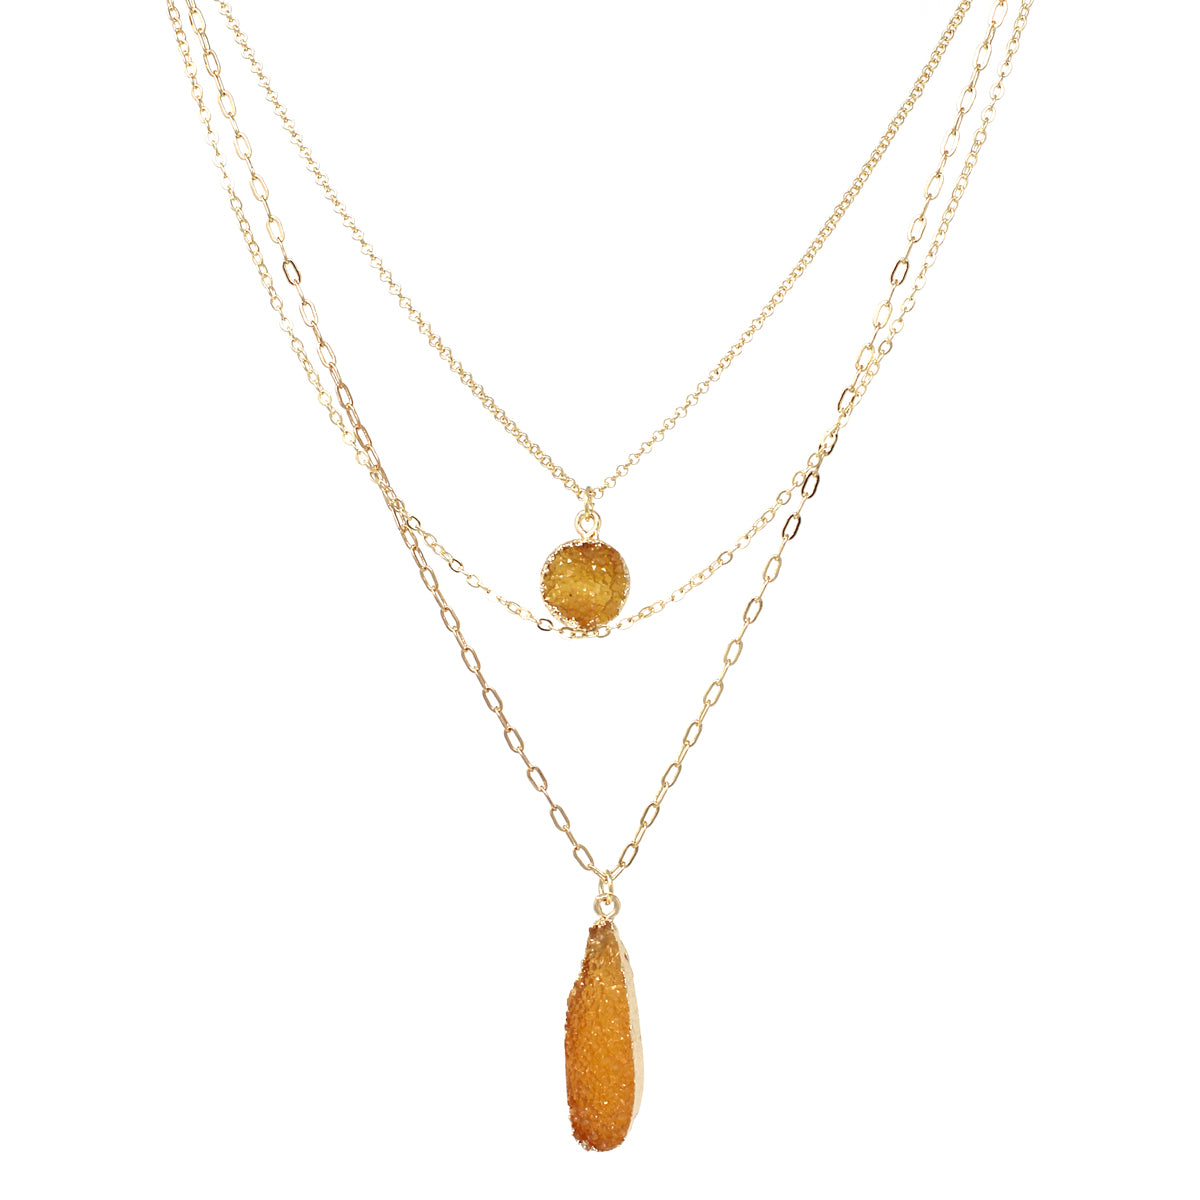 Round/ Teardrop Druzy Stone Pendant Triple Layered Necklace